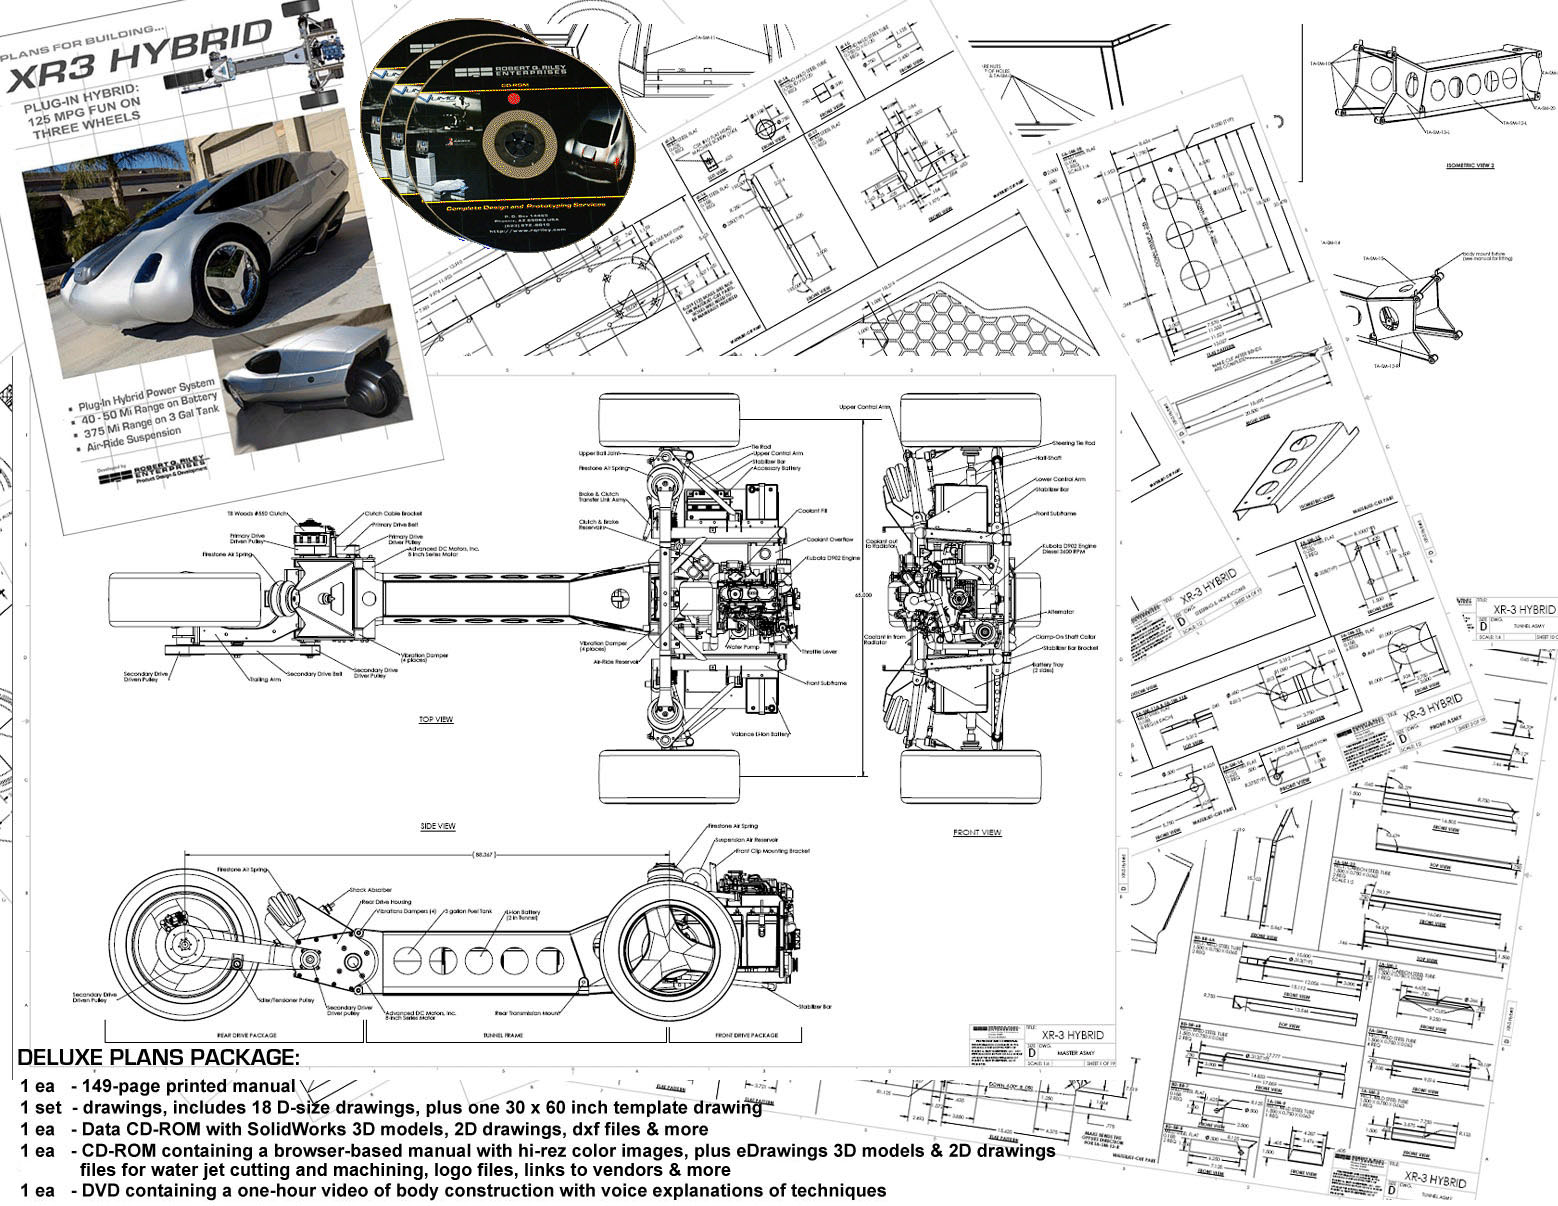 Deluxe Plan Set Done In Cad And Complete With Solidworks Files Models